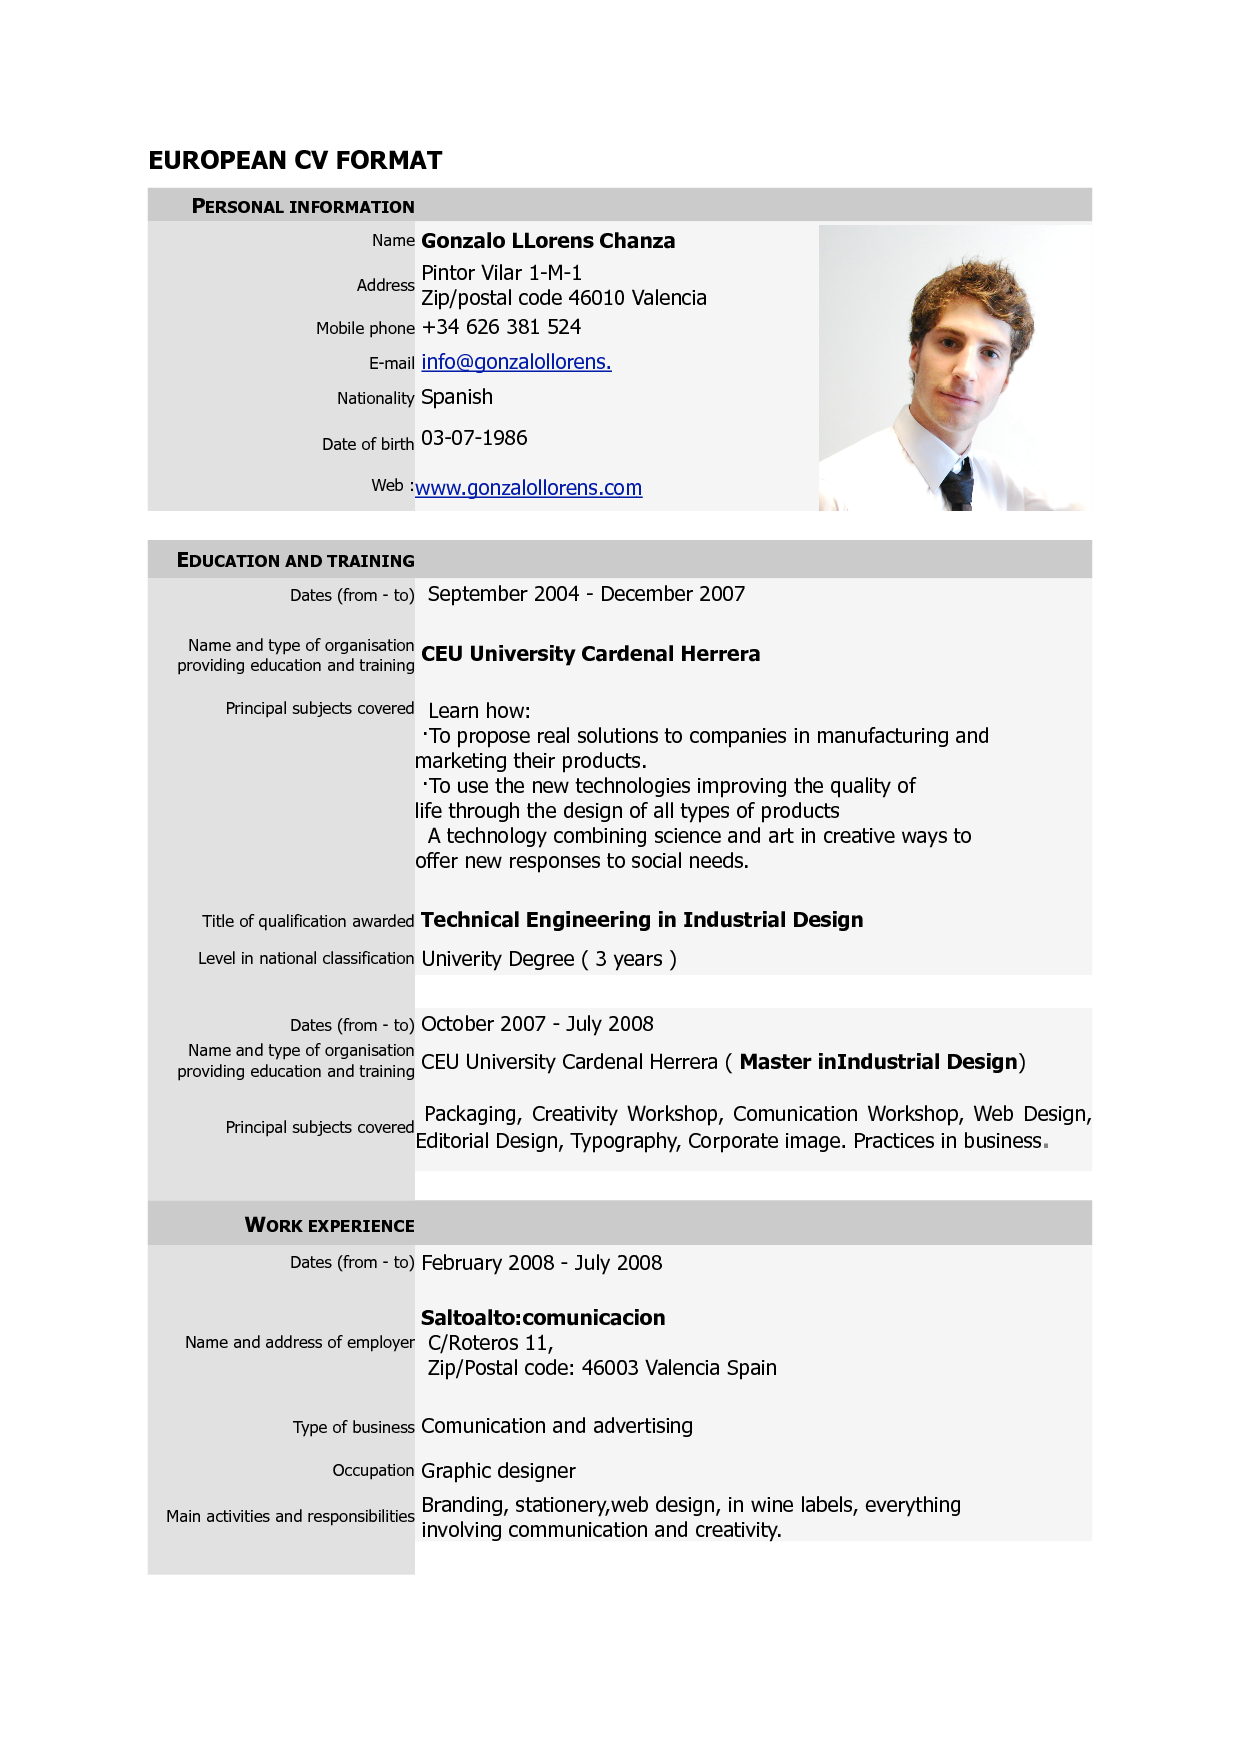 Letter Format In Resume. Cv format Free Download Europass Pdf Home European Format